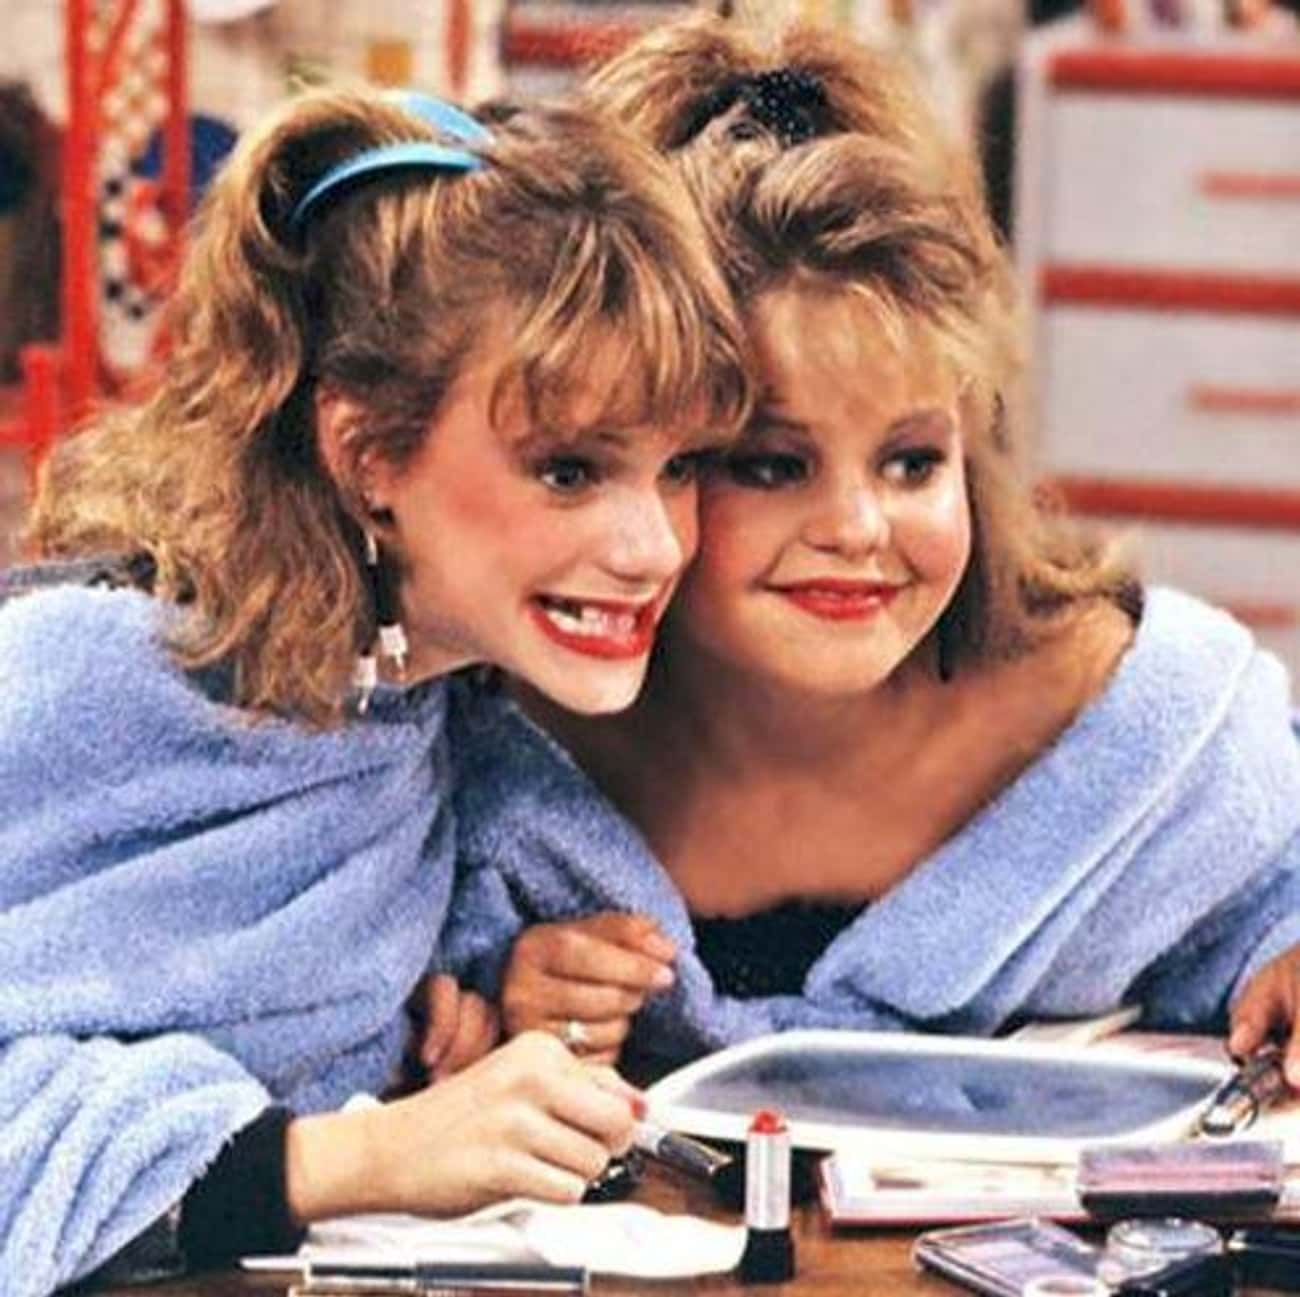 D.J. Tanner & Kimmy Gibbler is listed (or ranked) 4 on the list The Greatest Sets of BFFs in All of '90s TV